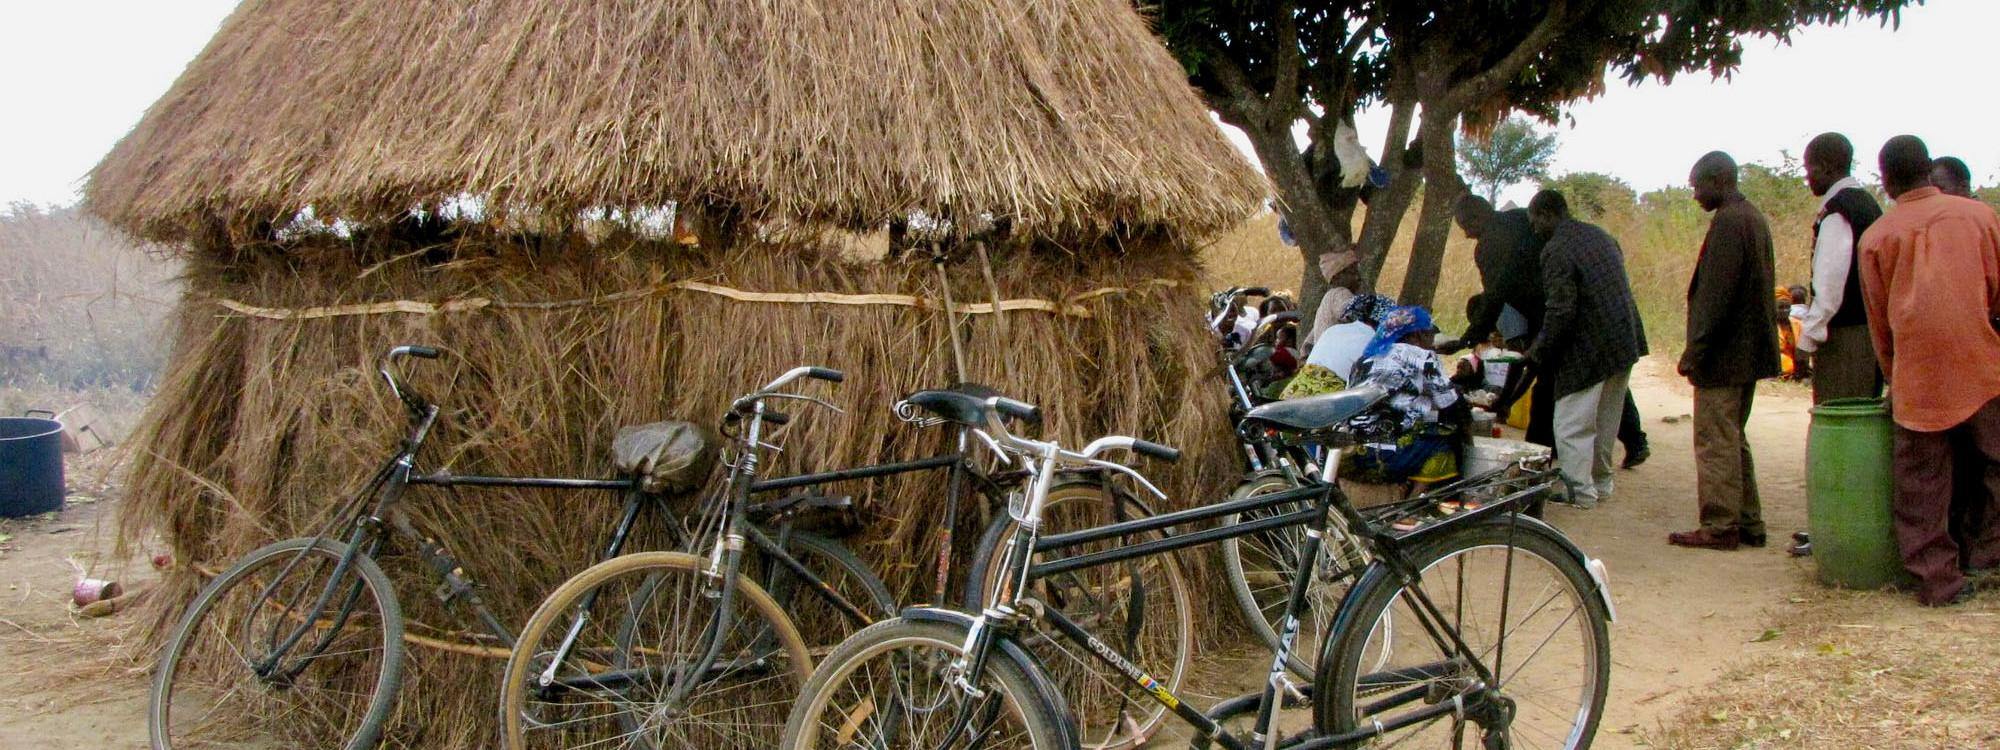 Hut and Bicycles